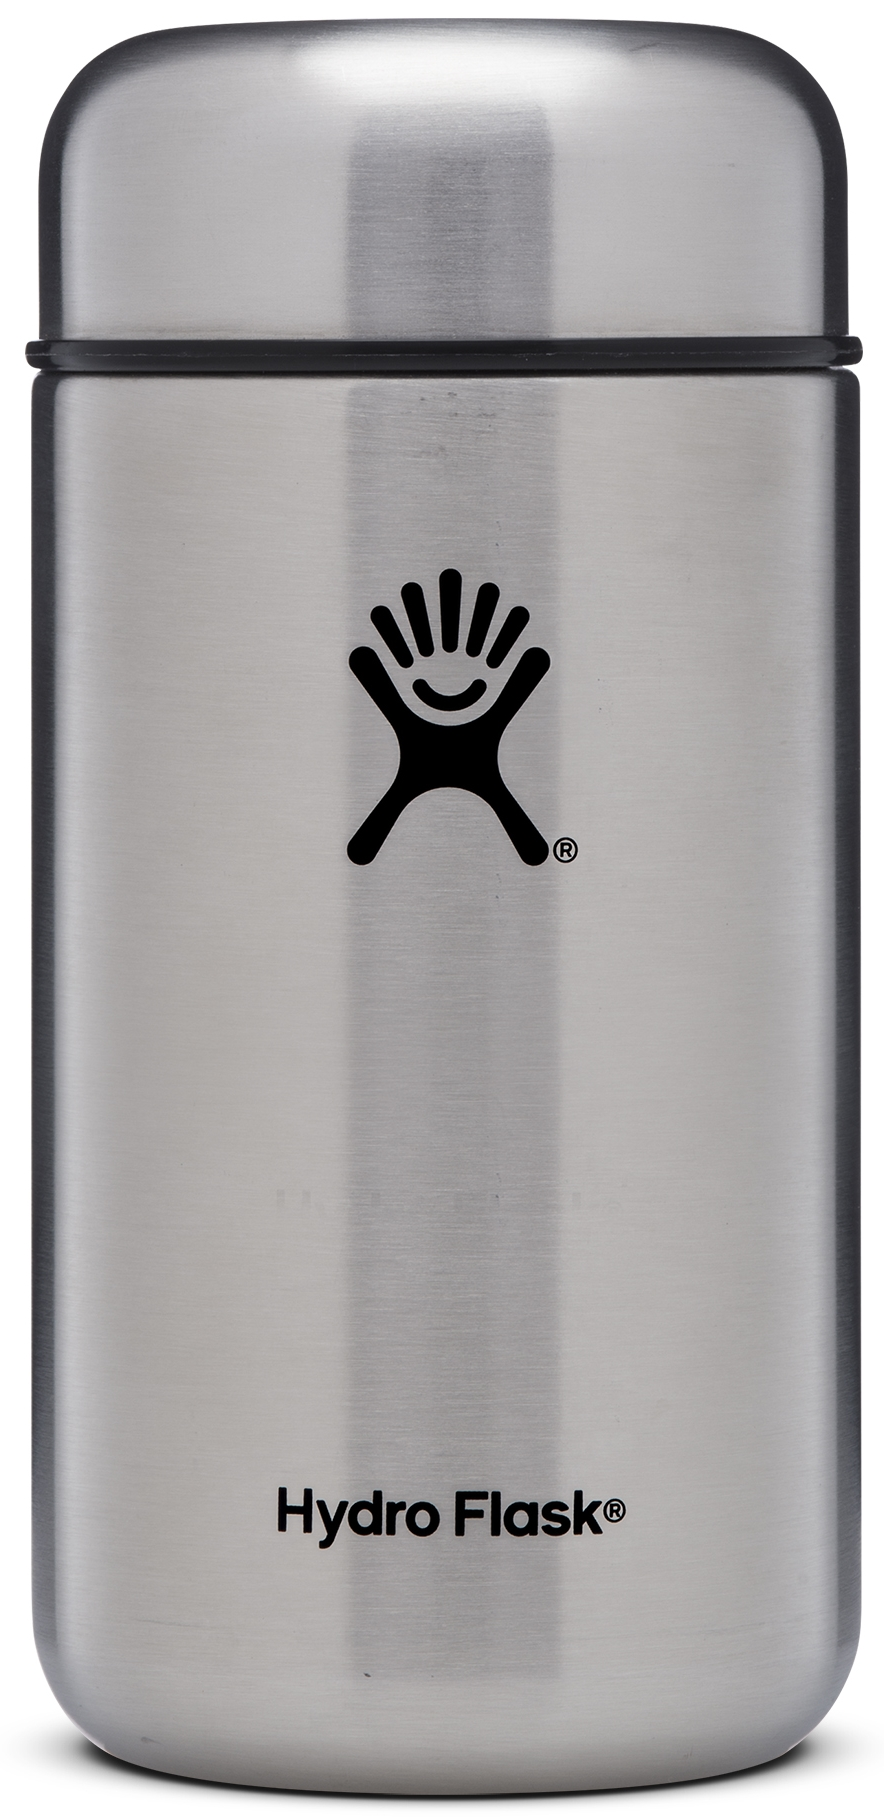 Hydro Flask 18 oz Food Flask, $35